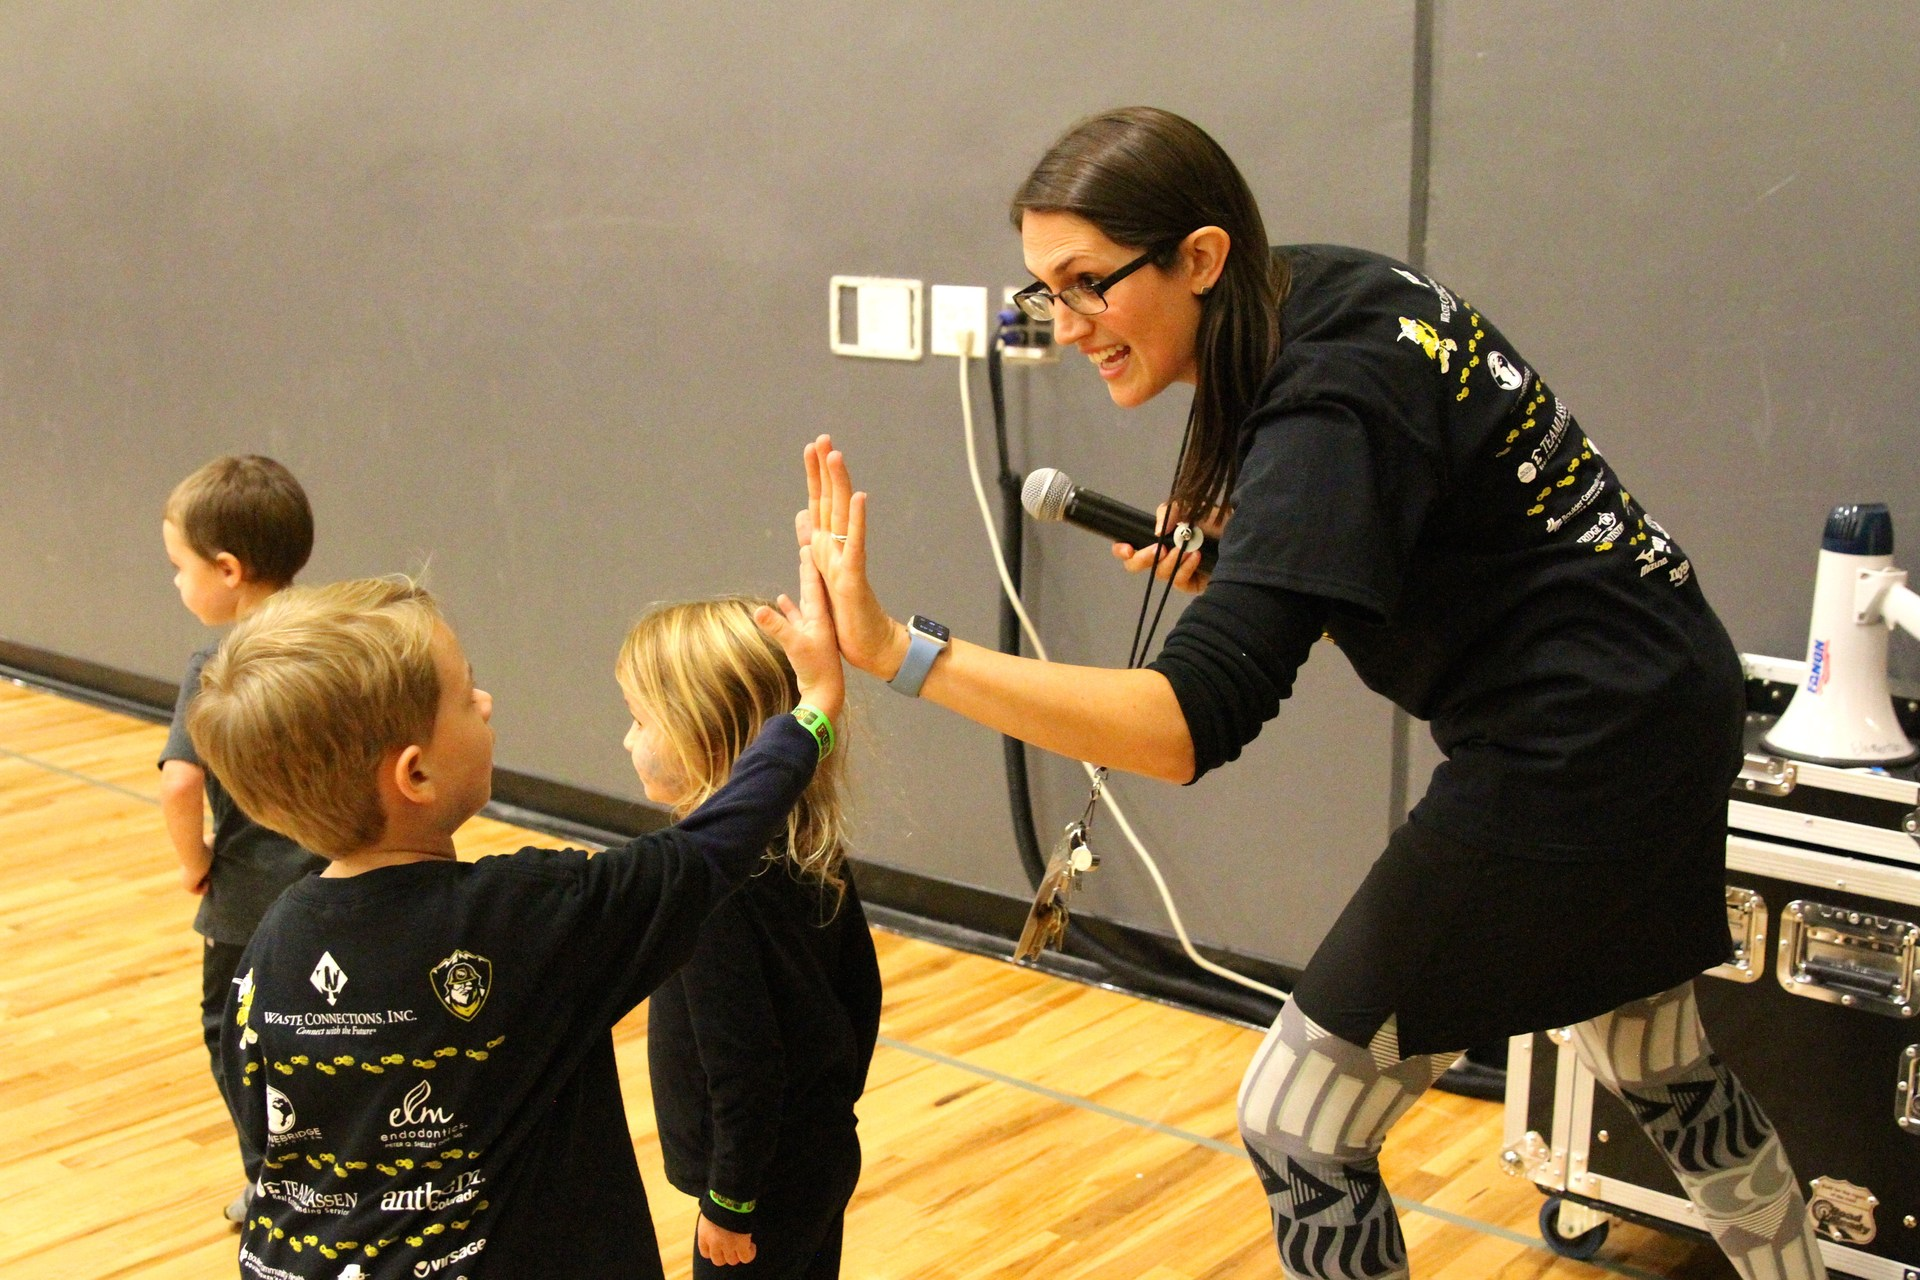 Mrs. Wilkin gives student a high five